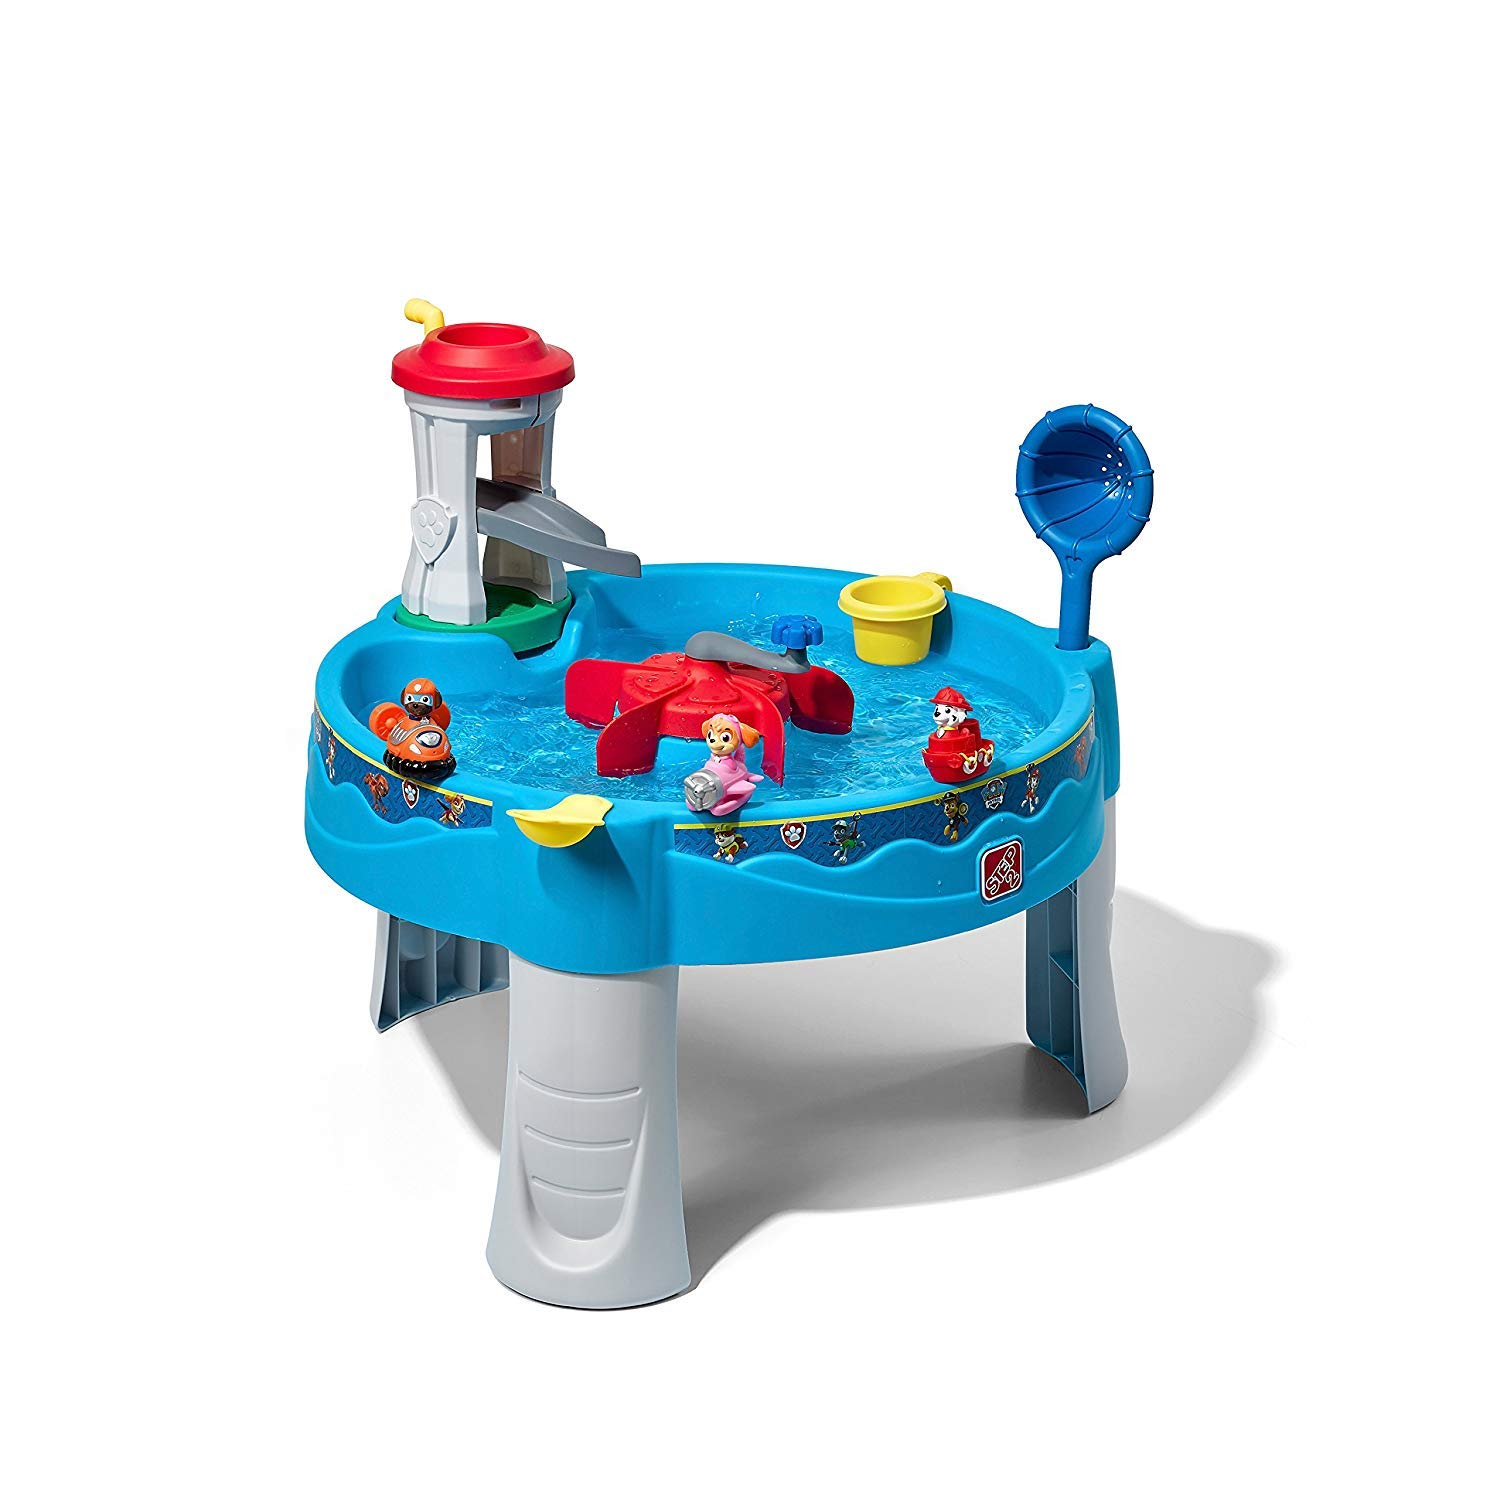 Step2 Water Table (Deluxe Pack - Includes Characters & Accessories) by Step2 (Image #1)